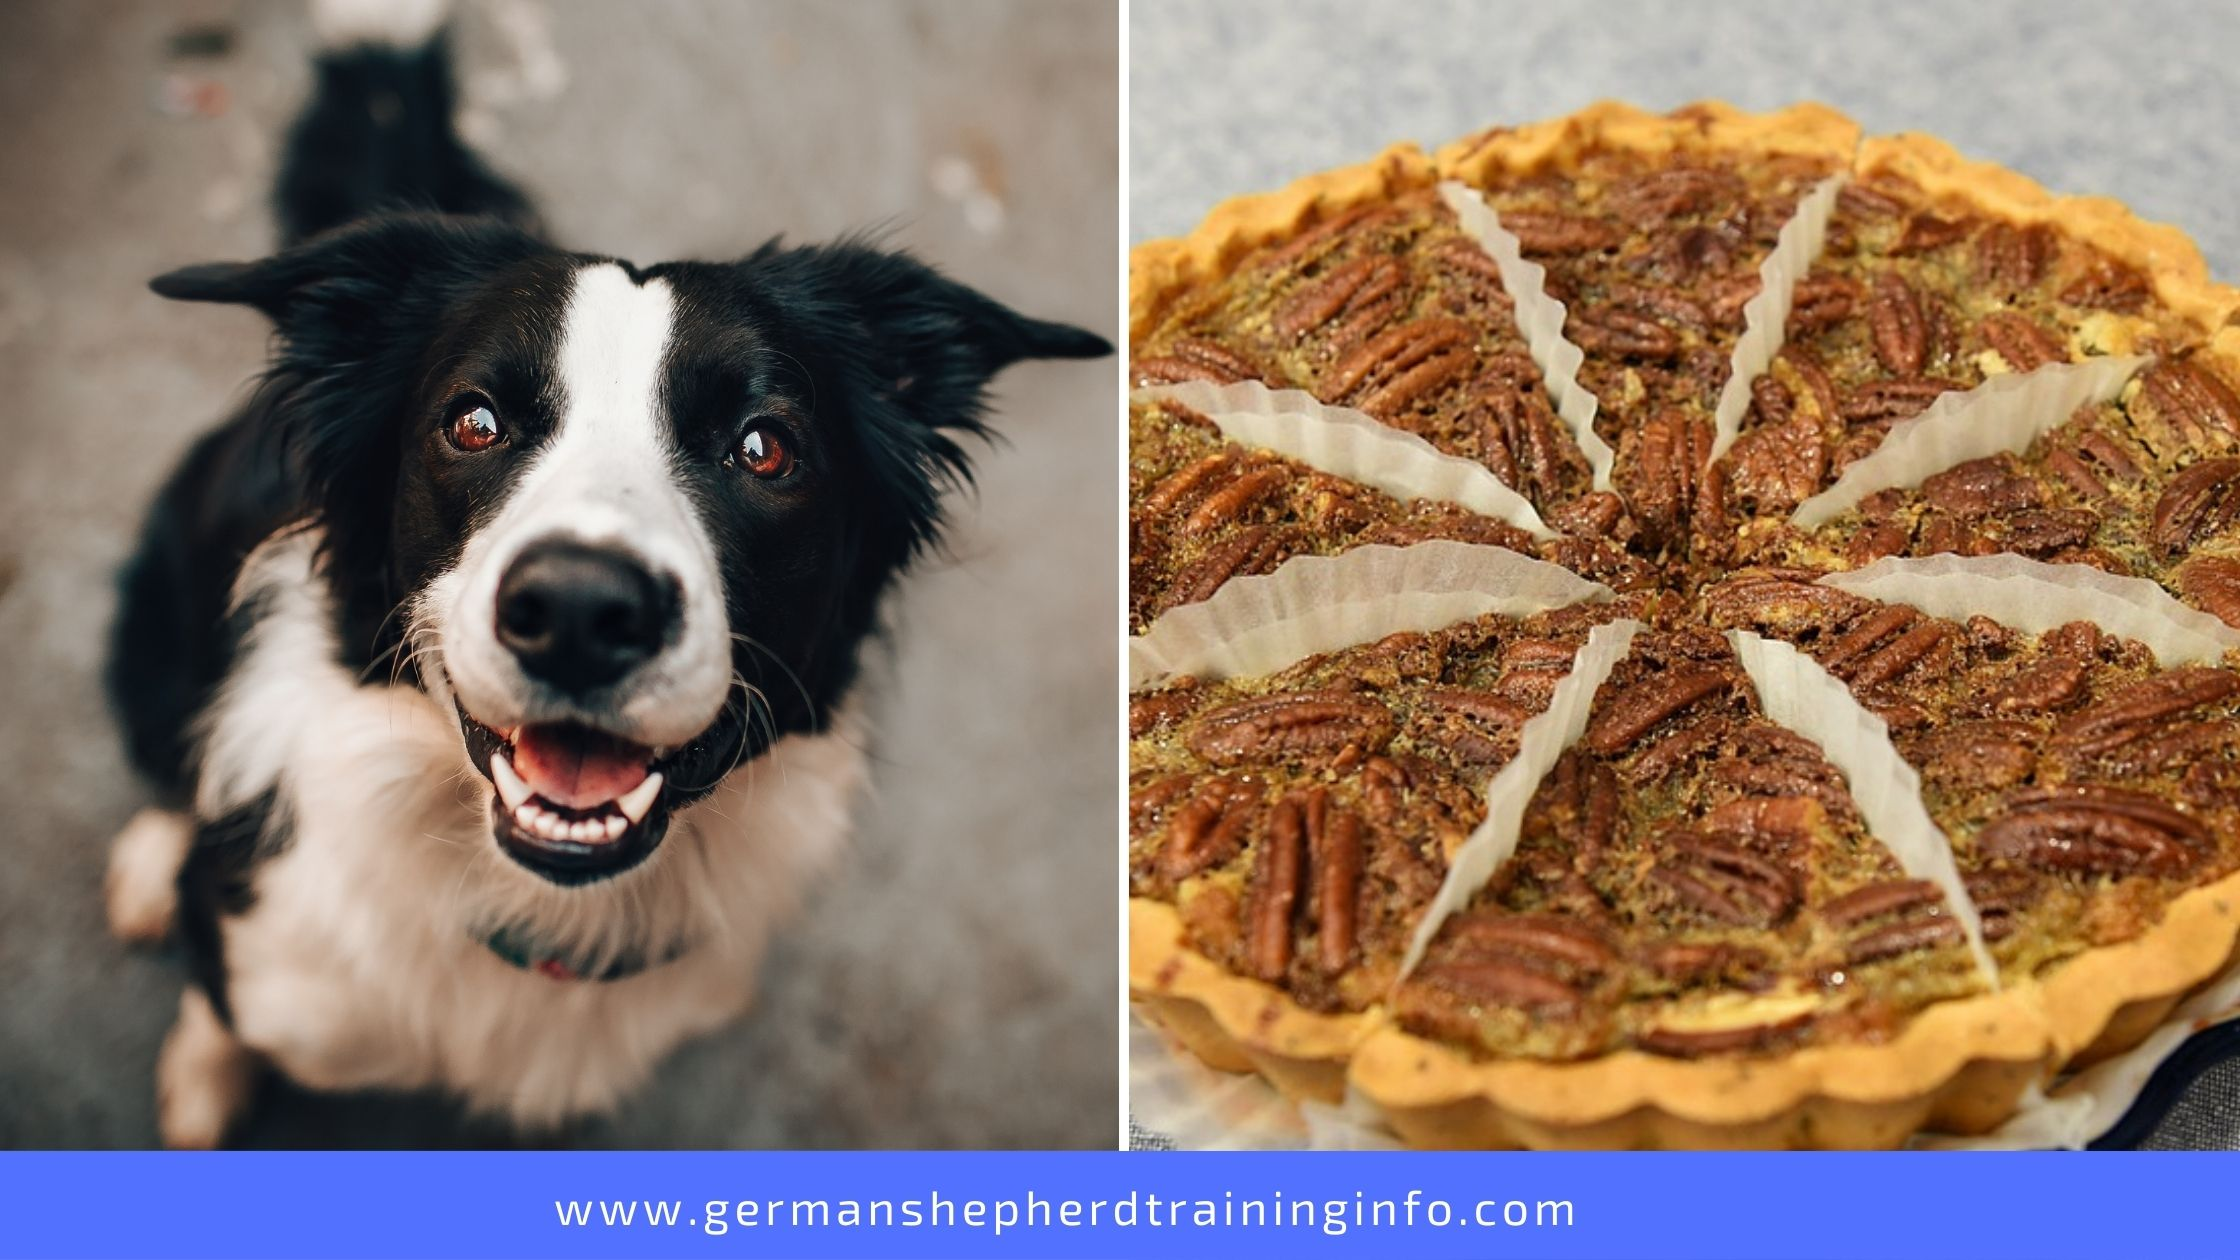 Can Dogs Eat Pecan Pie?